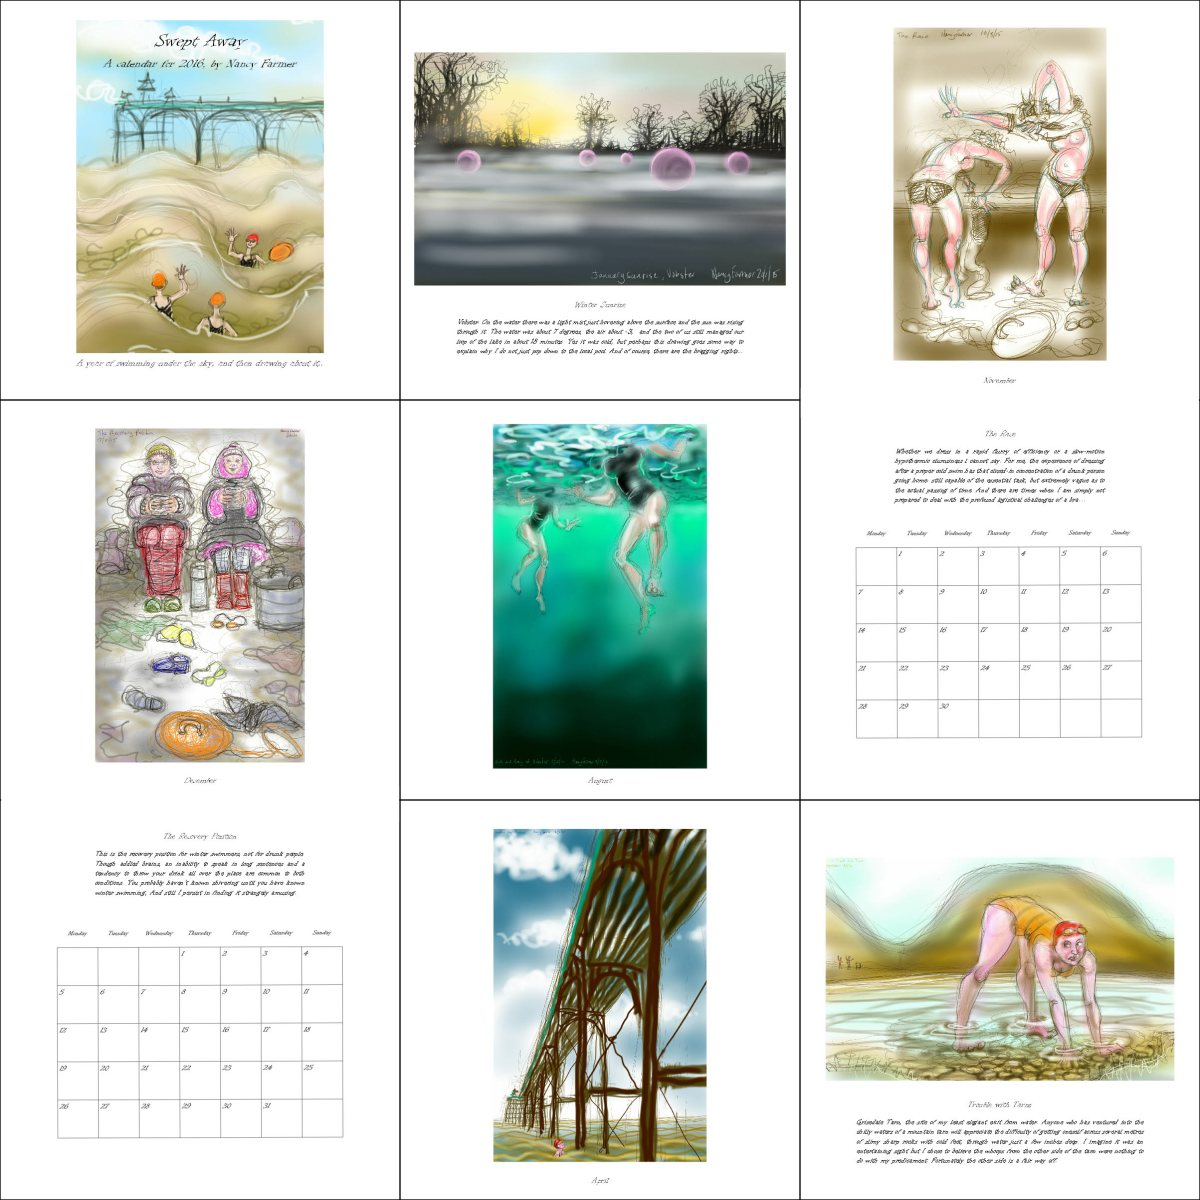 Swept Away - a calendar for 2016 by Nancy Farmer